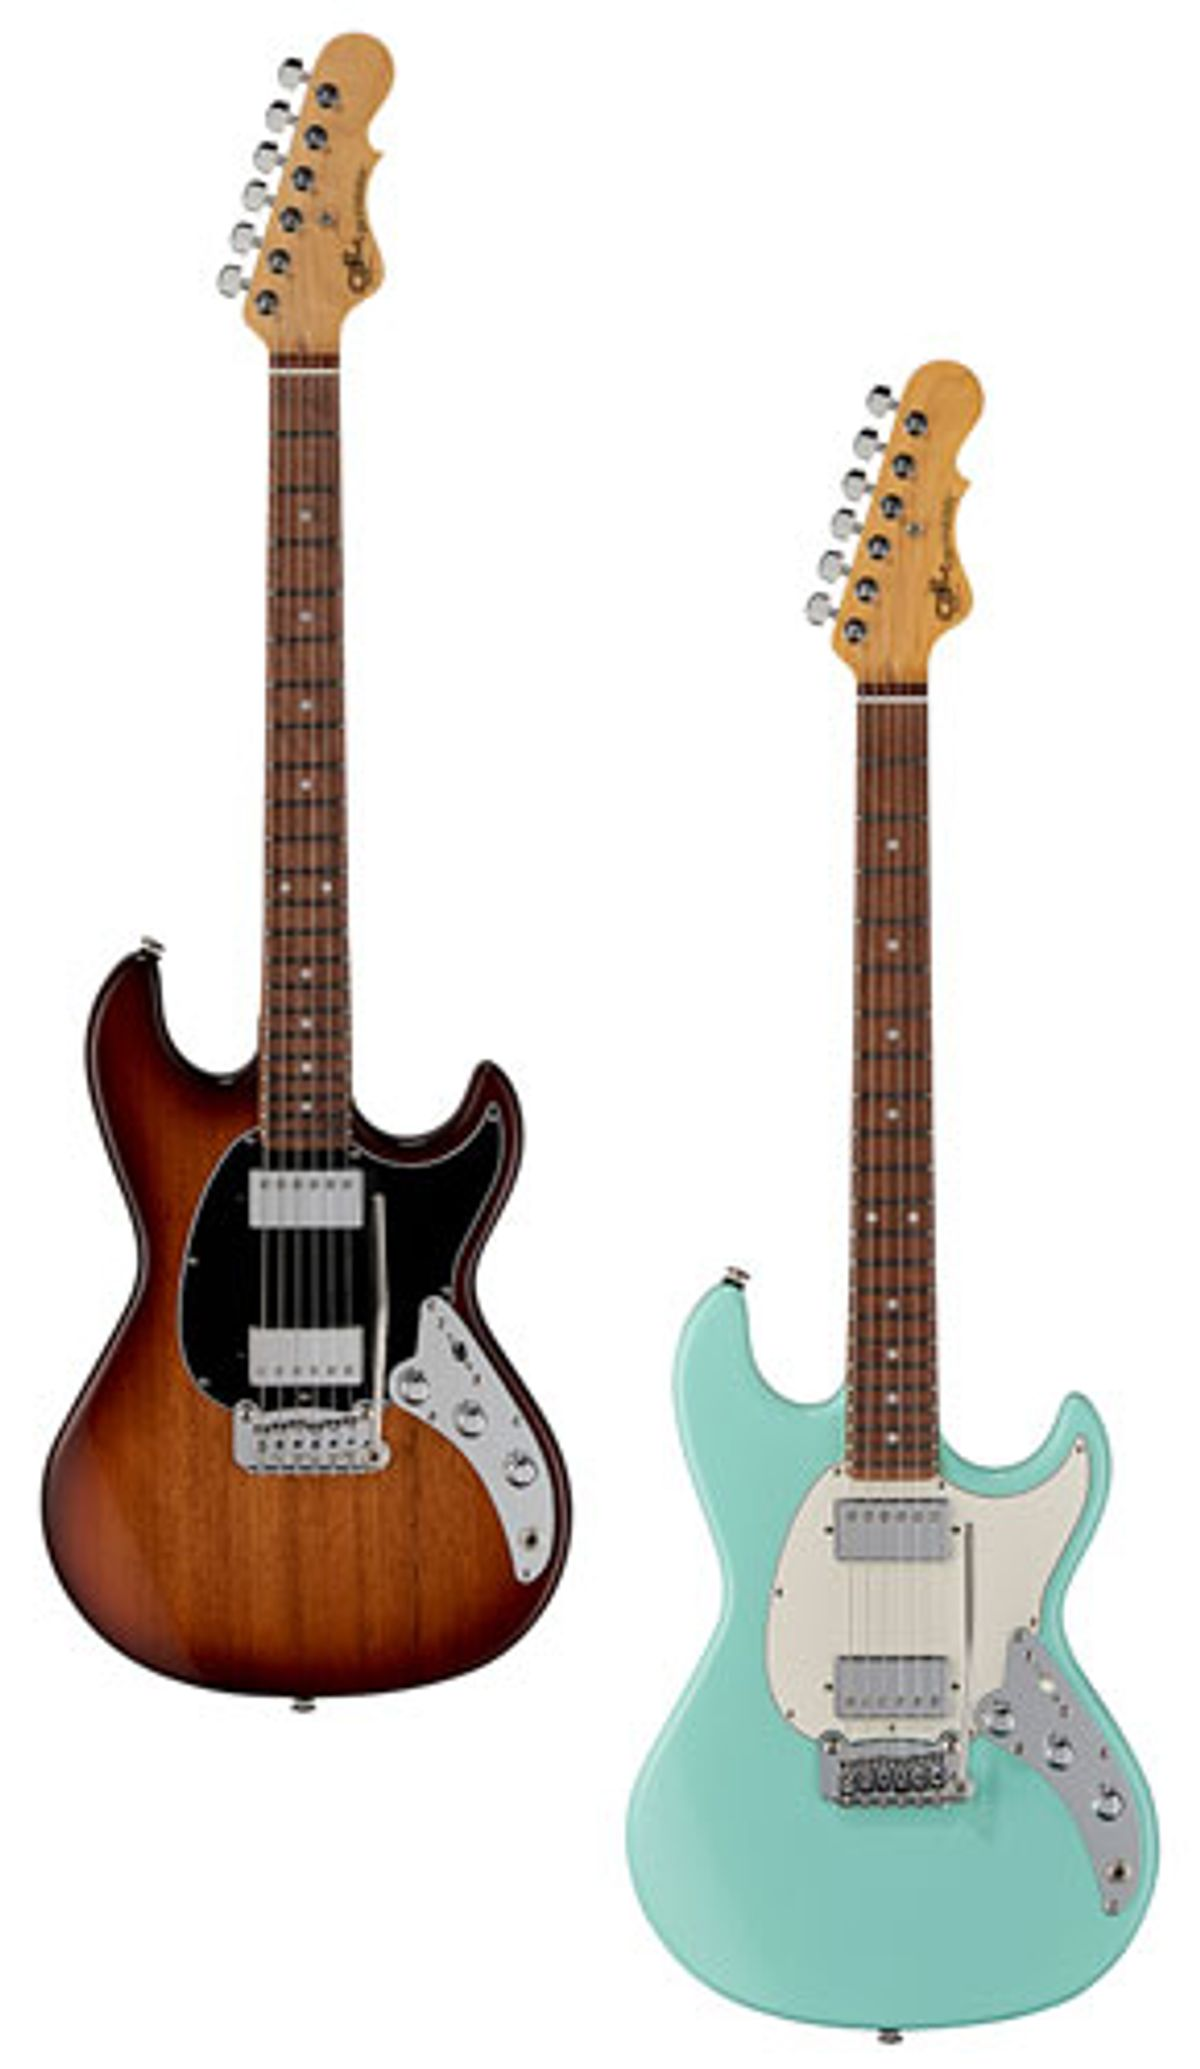 G&L Introduces the Fullerton Deluxe Skyhawk HH